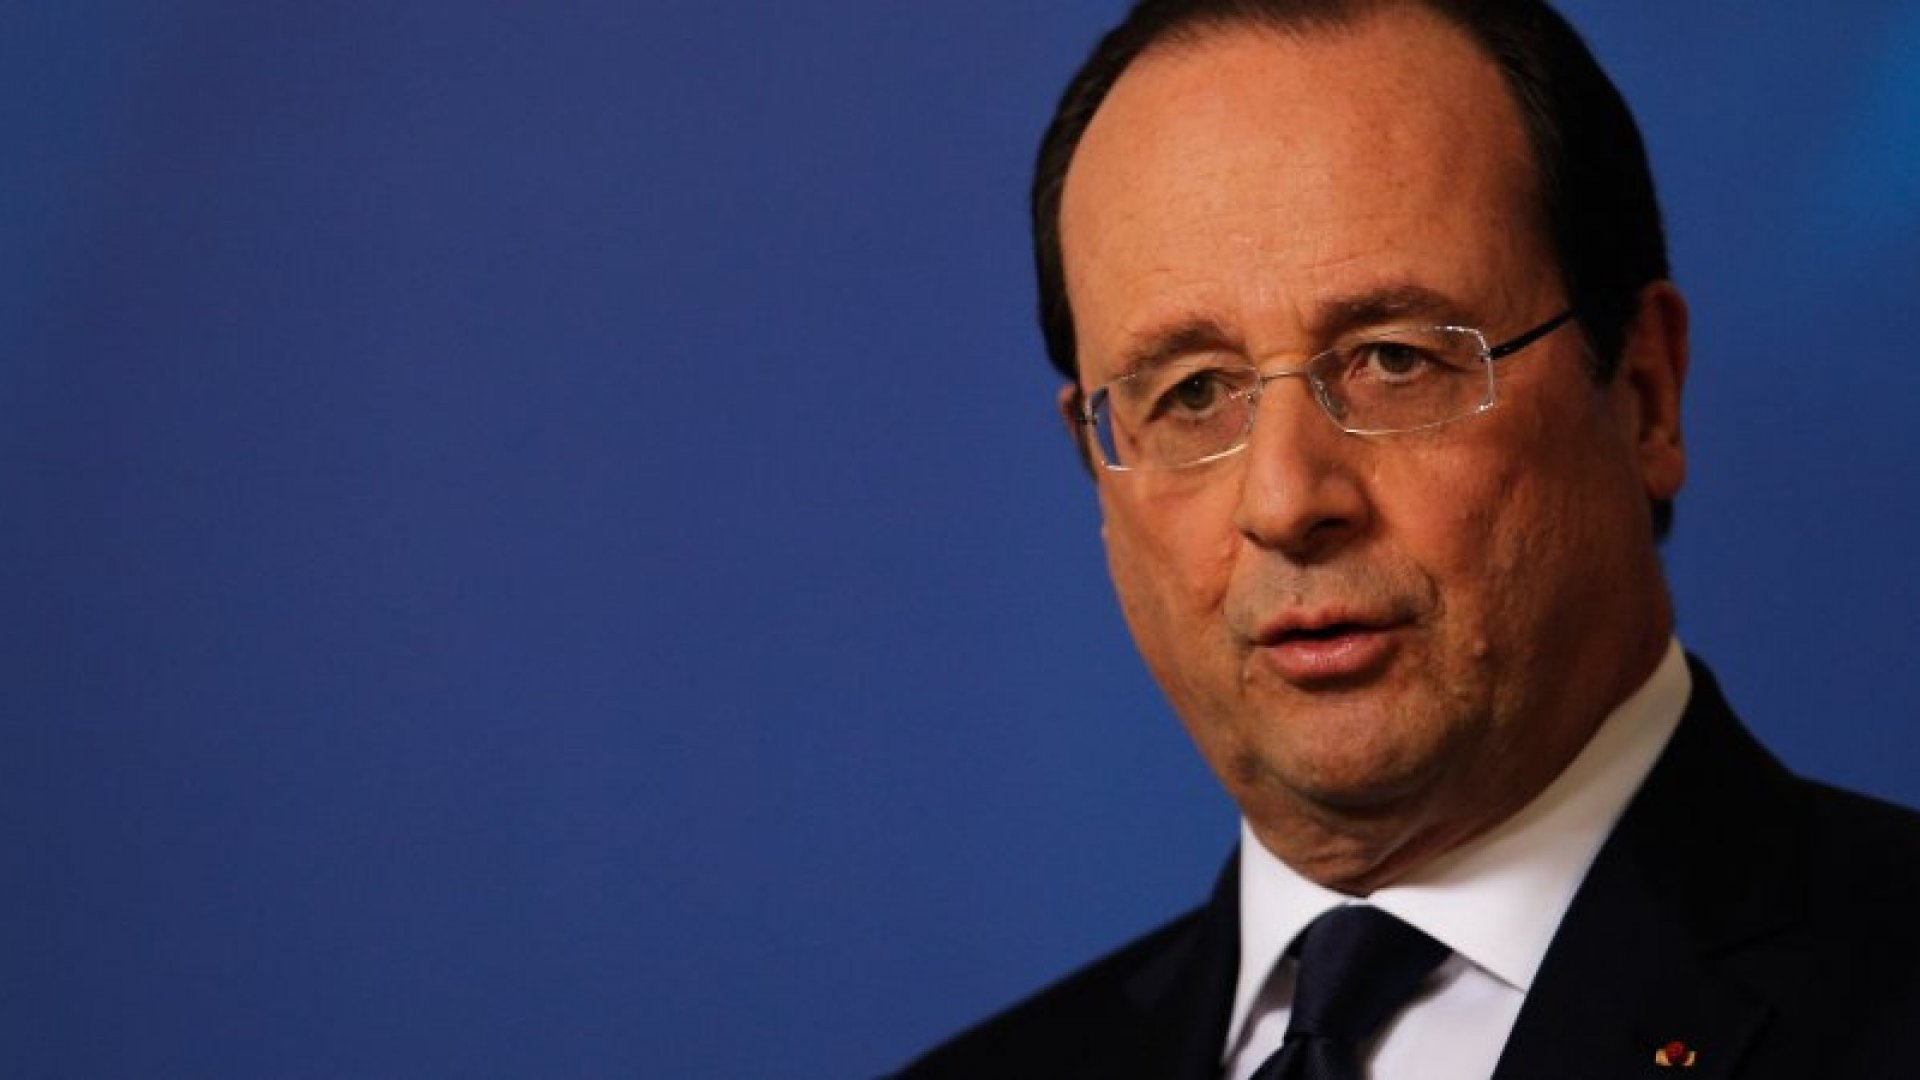 France Wants to Make Google, Facebook Accountable For Hate Speech